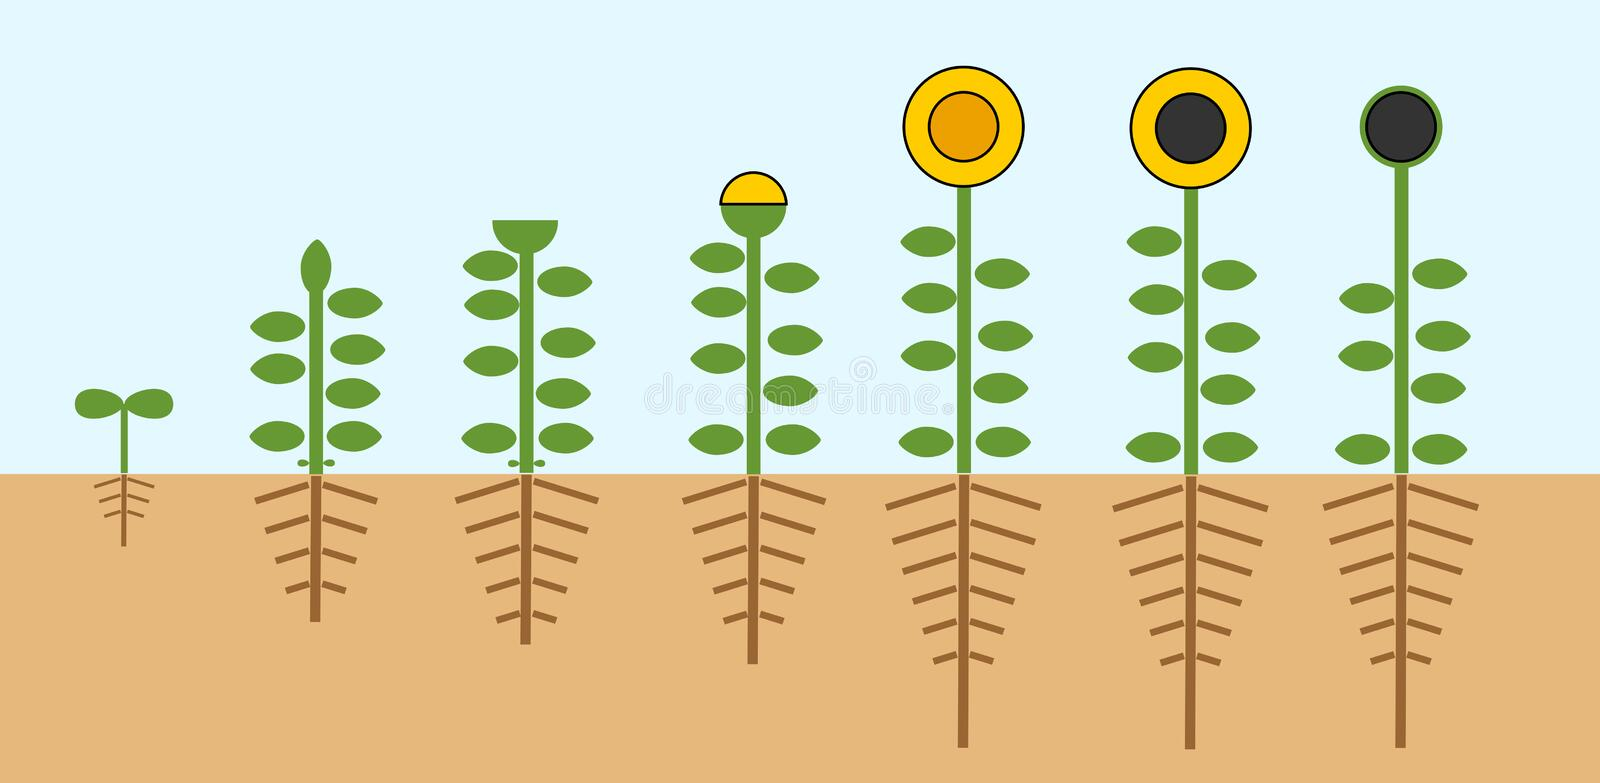 Sunflower life cycle. Growth stages from seed to flowering and fruit-bearing plant with root system royalty free illustration